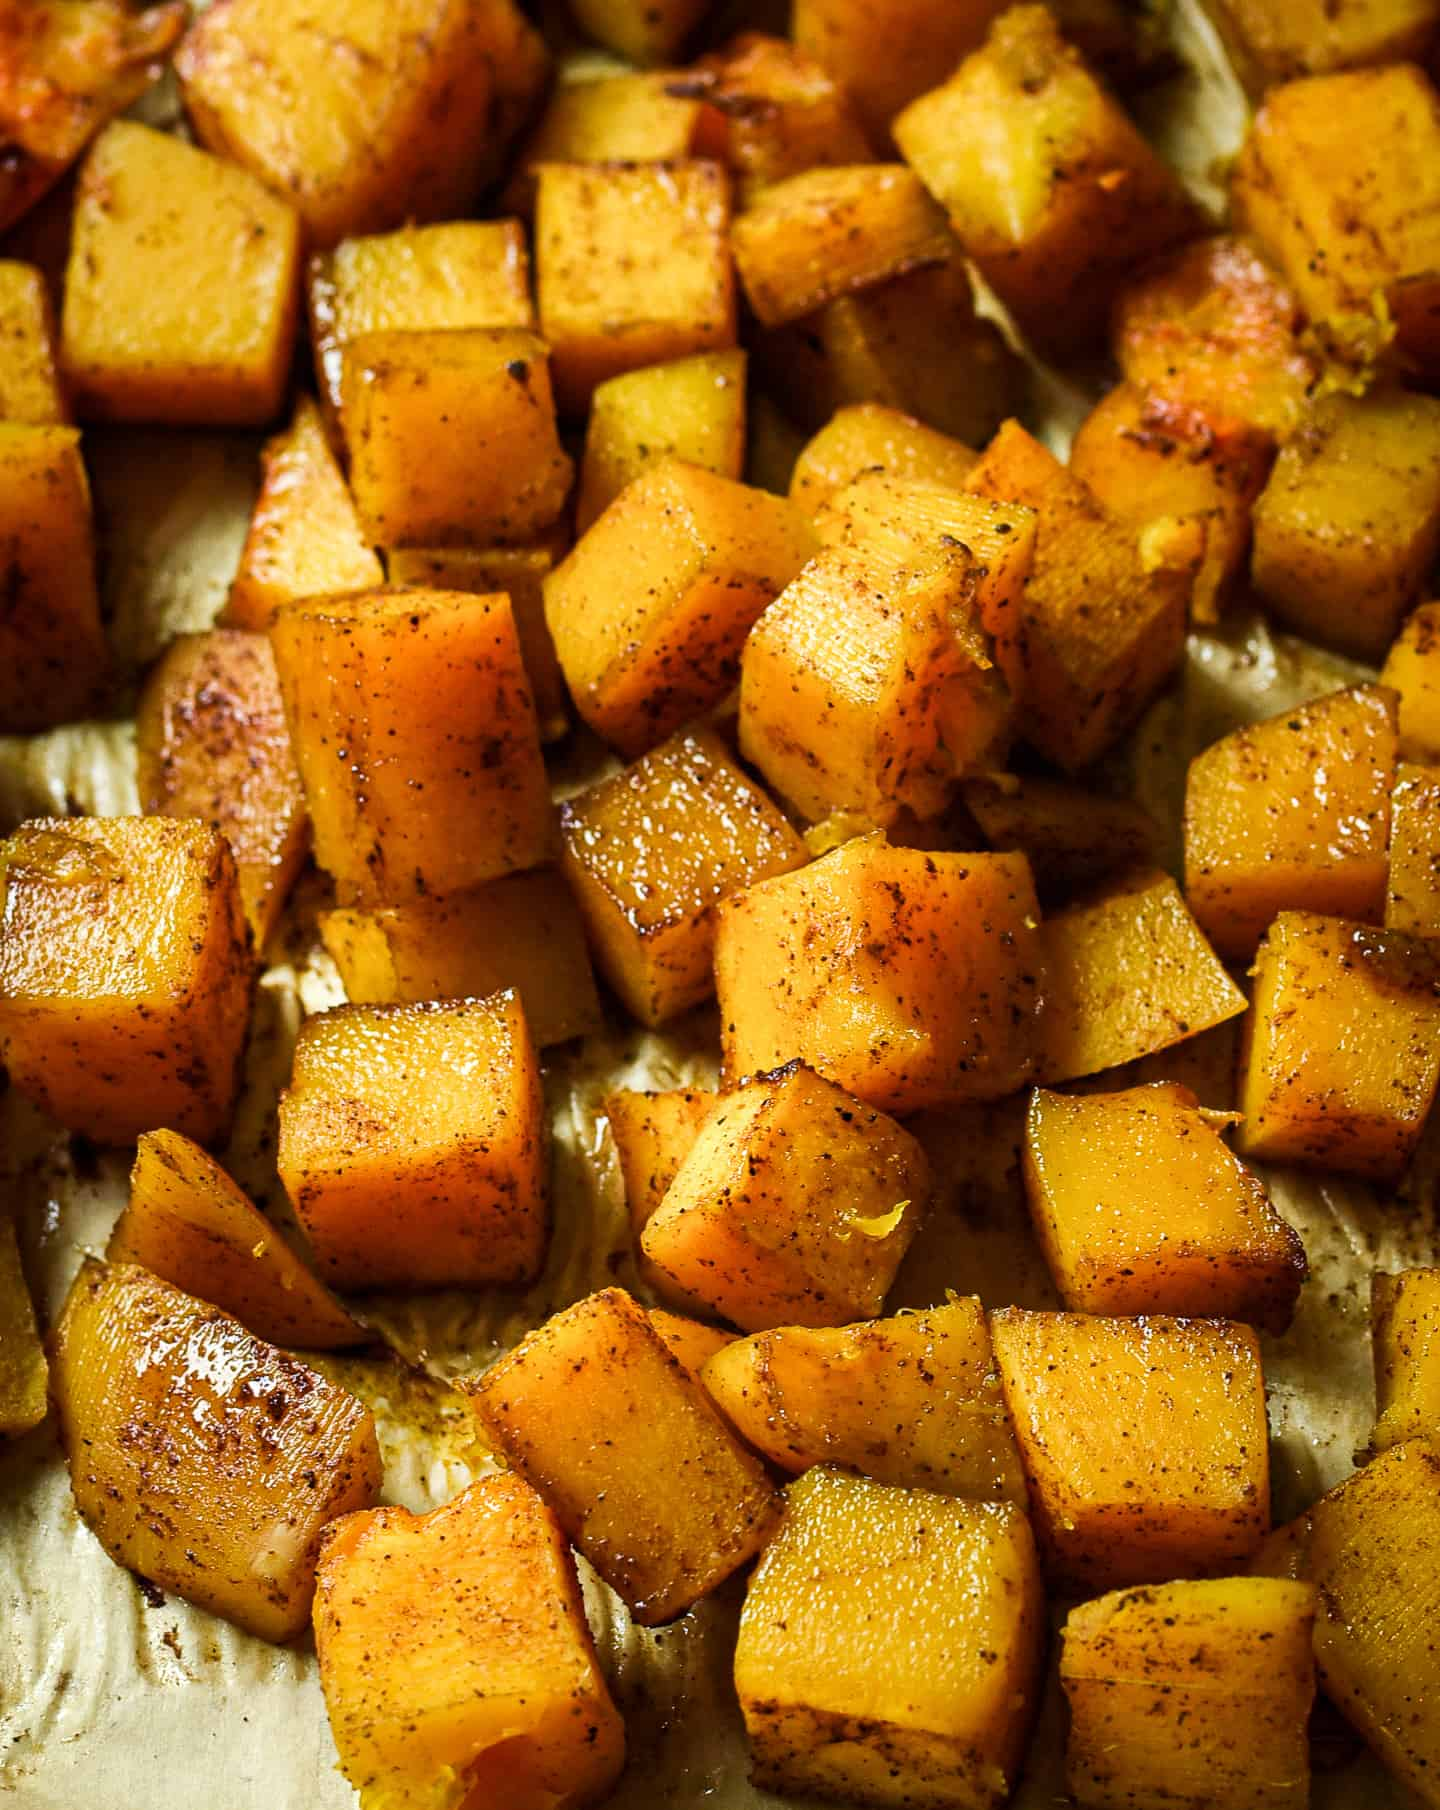 Roasted butternut squash cubes.